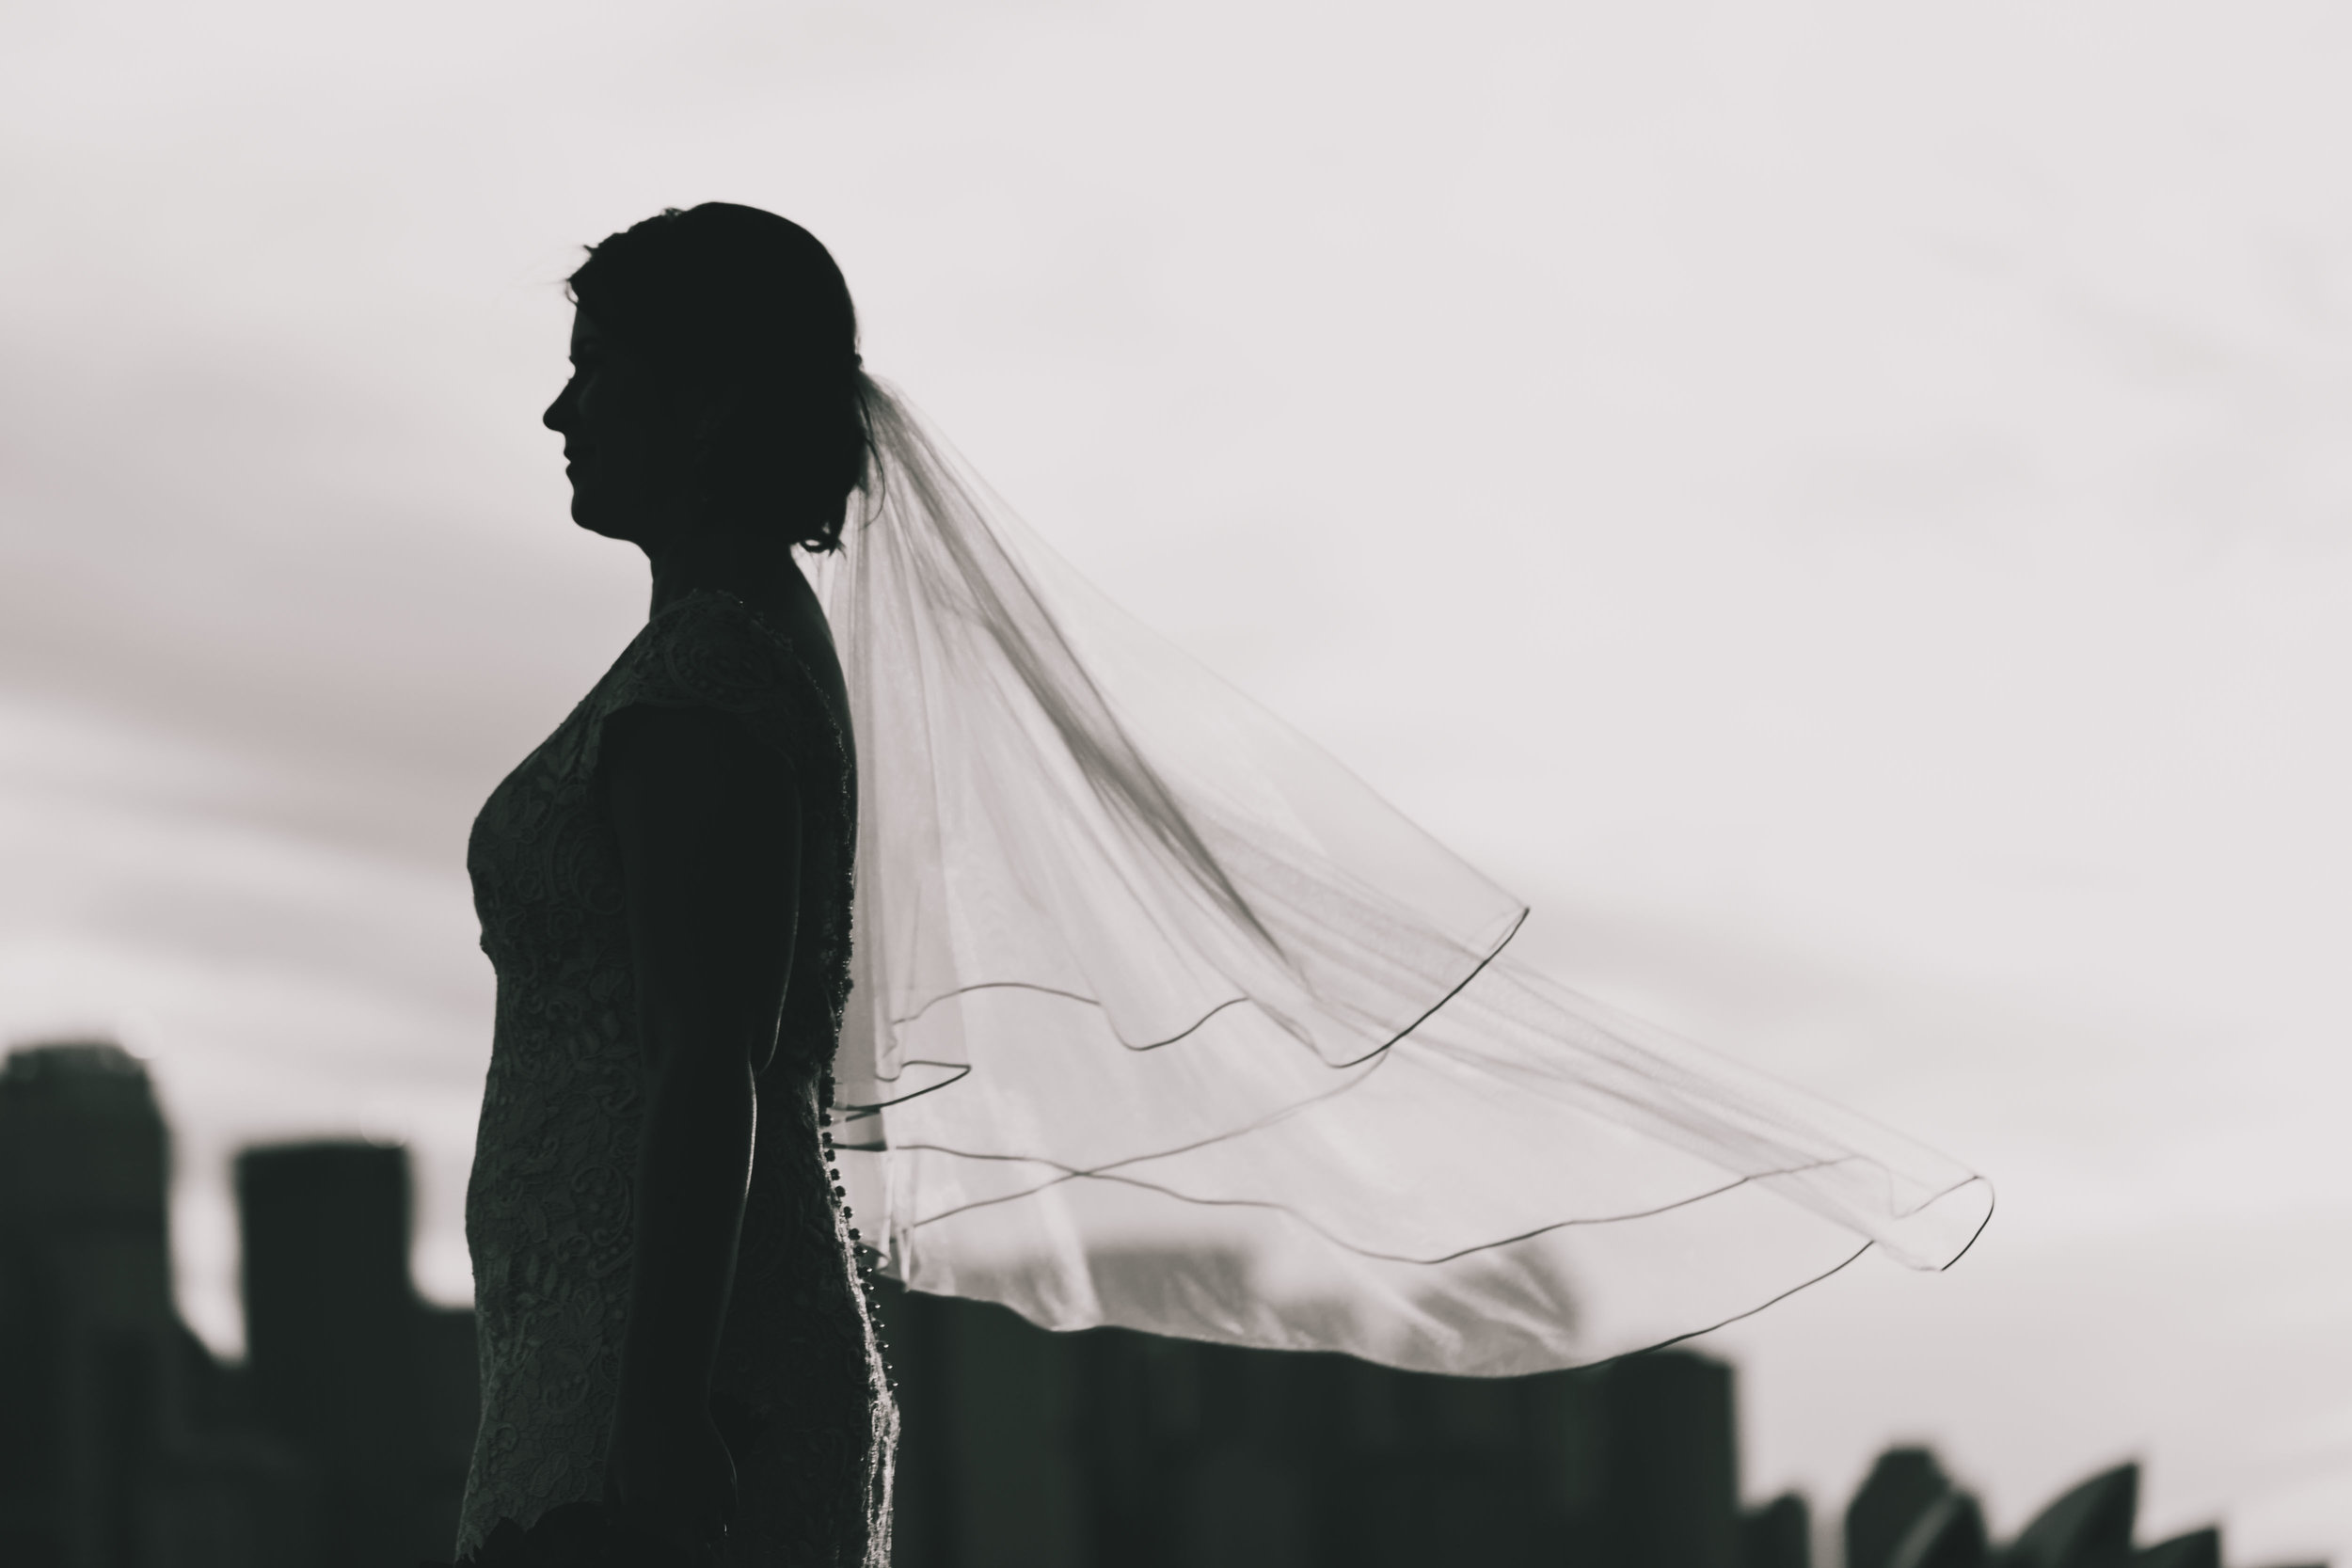 Bride with veil blowing in the wind. Black and white photo. Sydney harbour wedding.